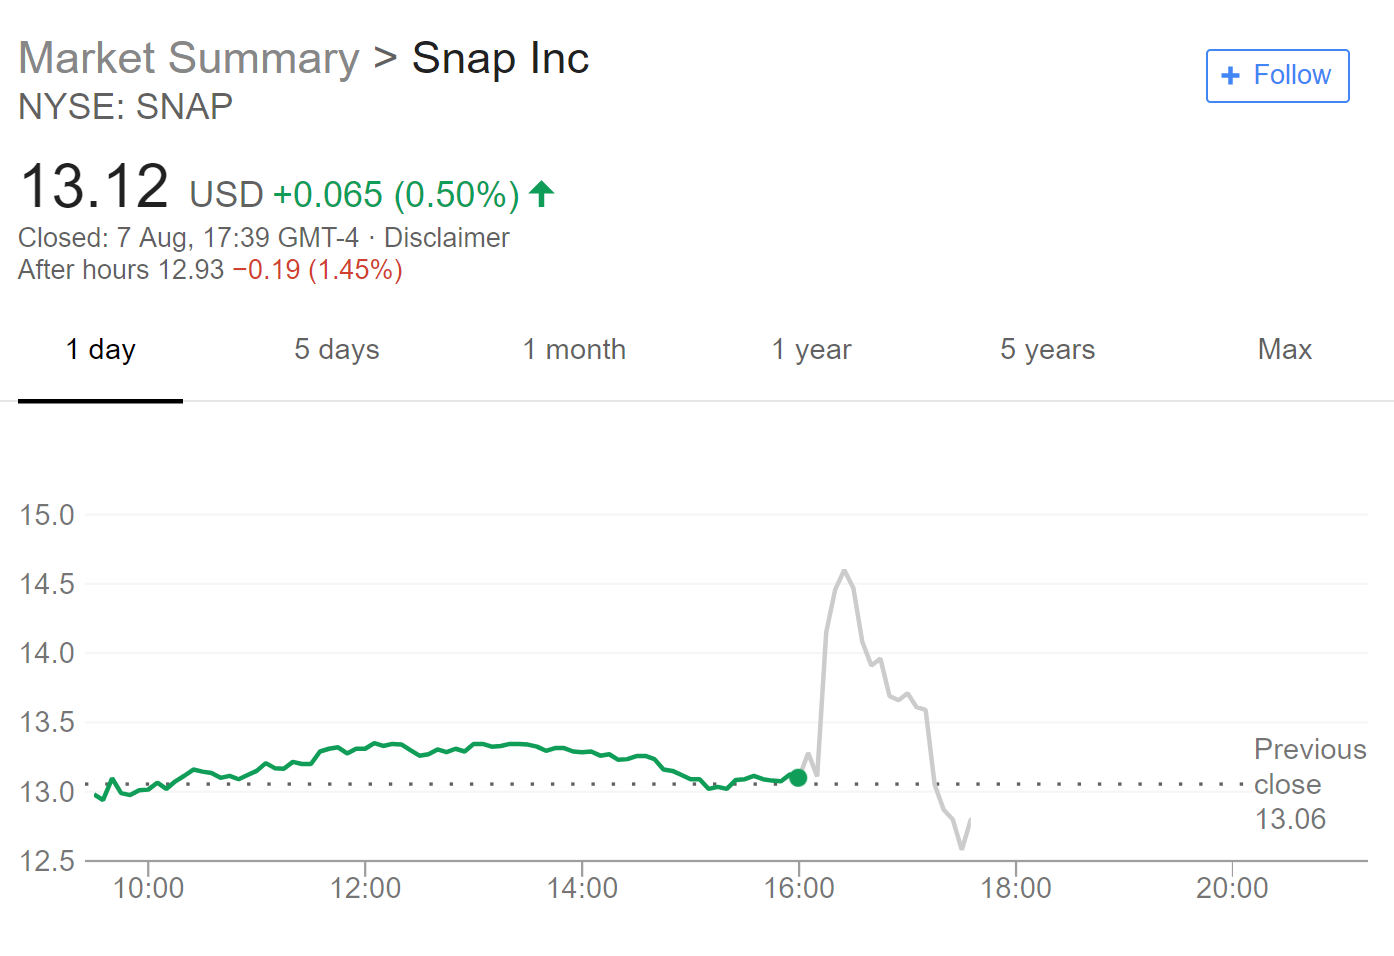 Snapchat's controversial redesign caused it to hemorrhage users